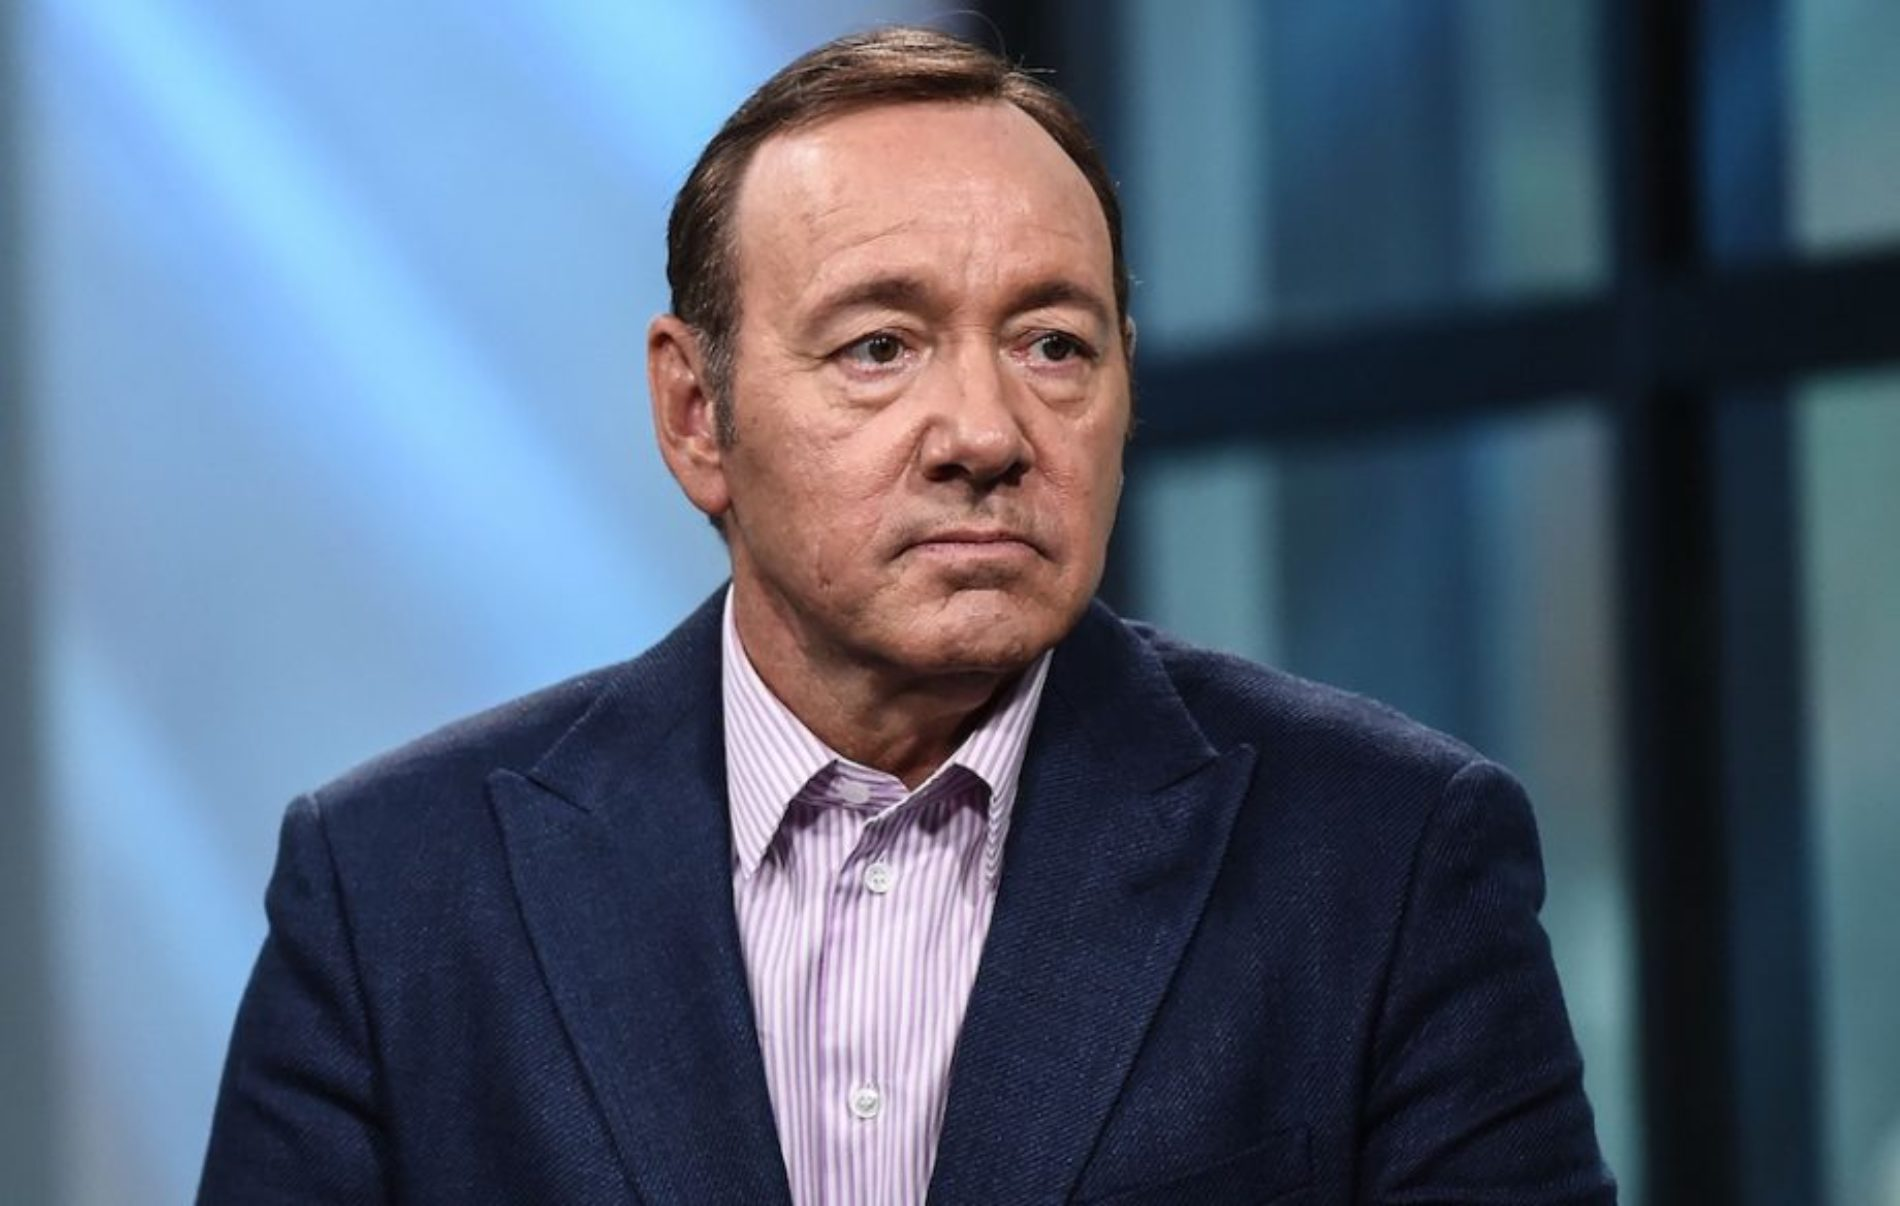 A Look at The Case of Kevin Spacey